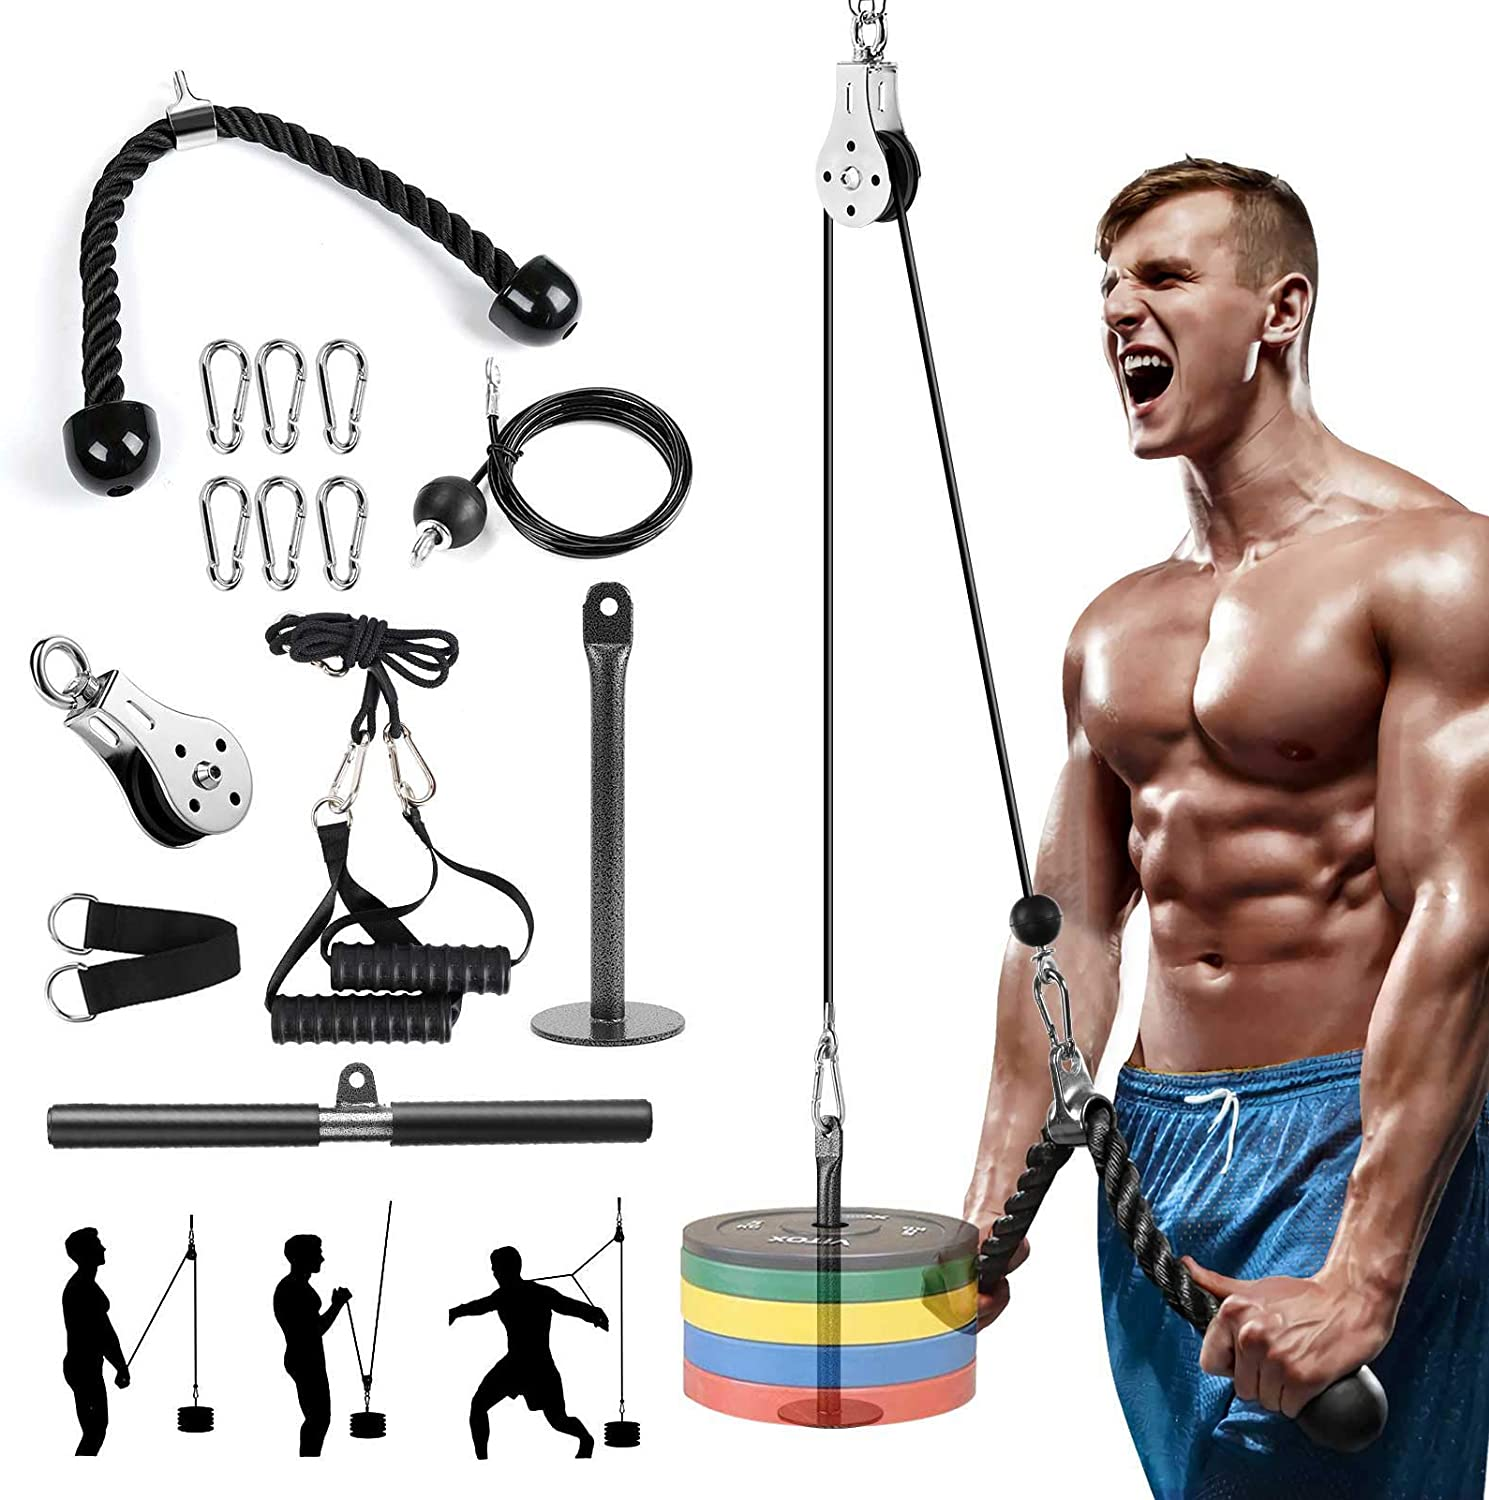 Fitness Lat and Lift Pulley System Gym, LAT Pull Down Bar Cable Machine Attachments for Gym, Tricep Pulley Pro- Cable Machine System with Curl Lat Pulldown Bar, Home Gym Workout for Weight Training